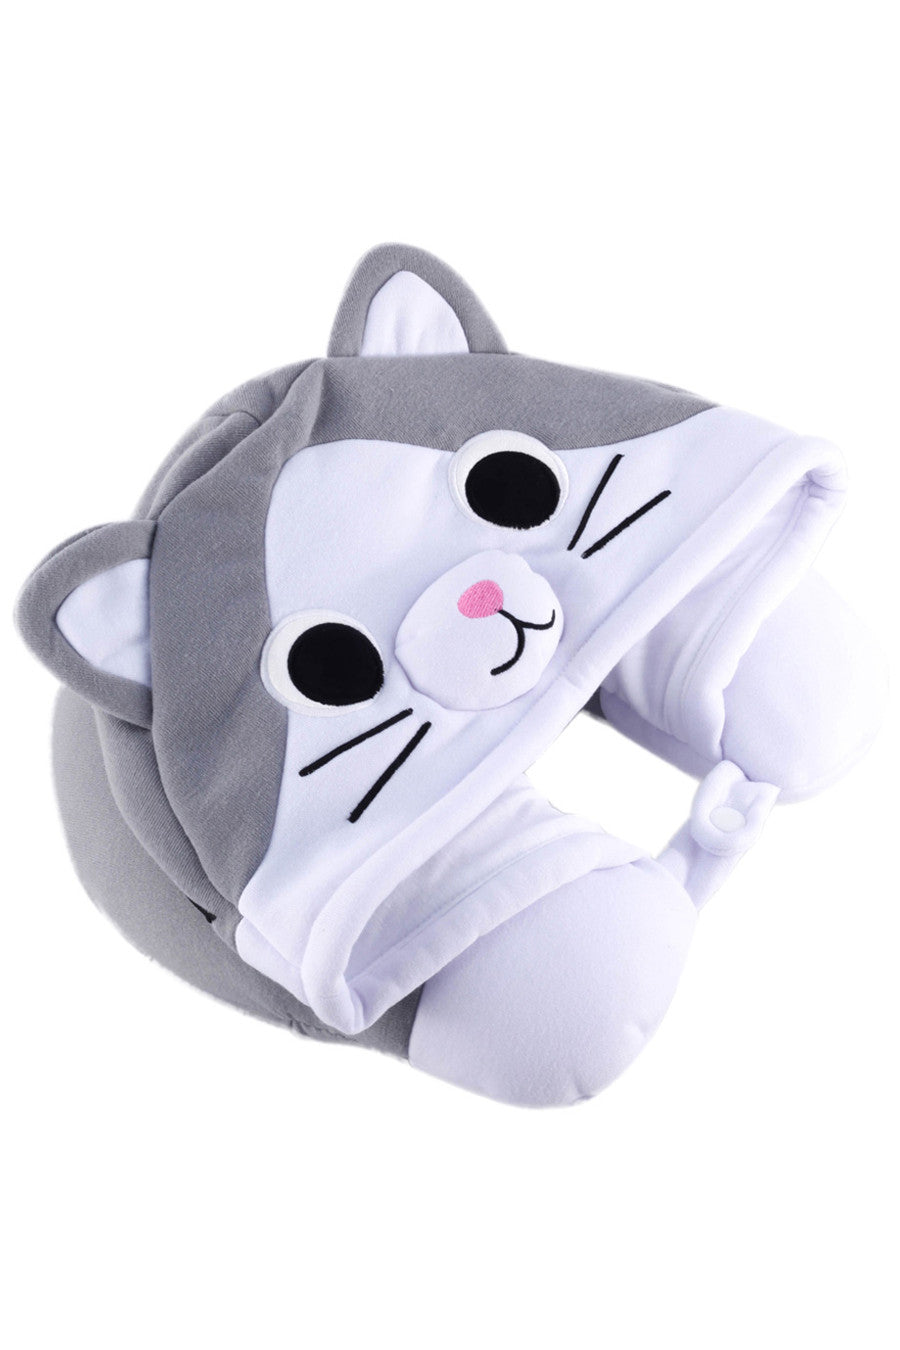 Tabby Cat Kigurumi Neck Pillow Animal Travel Hoodie